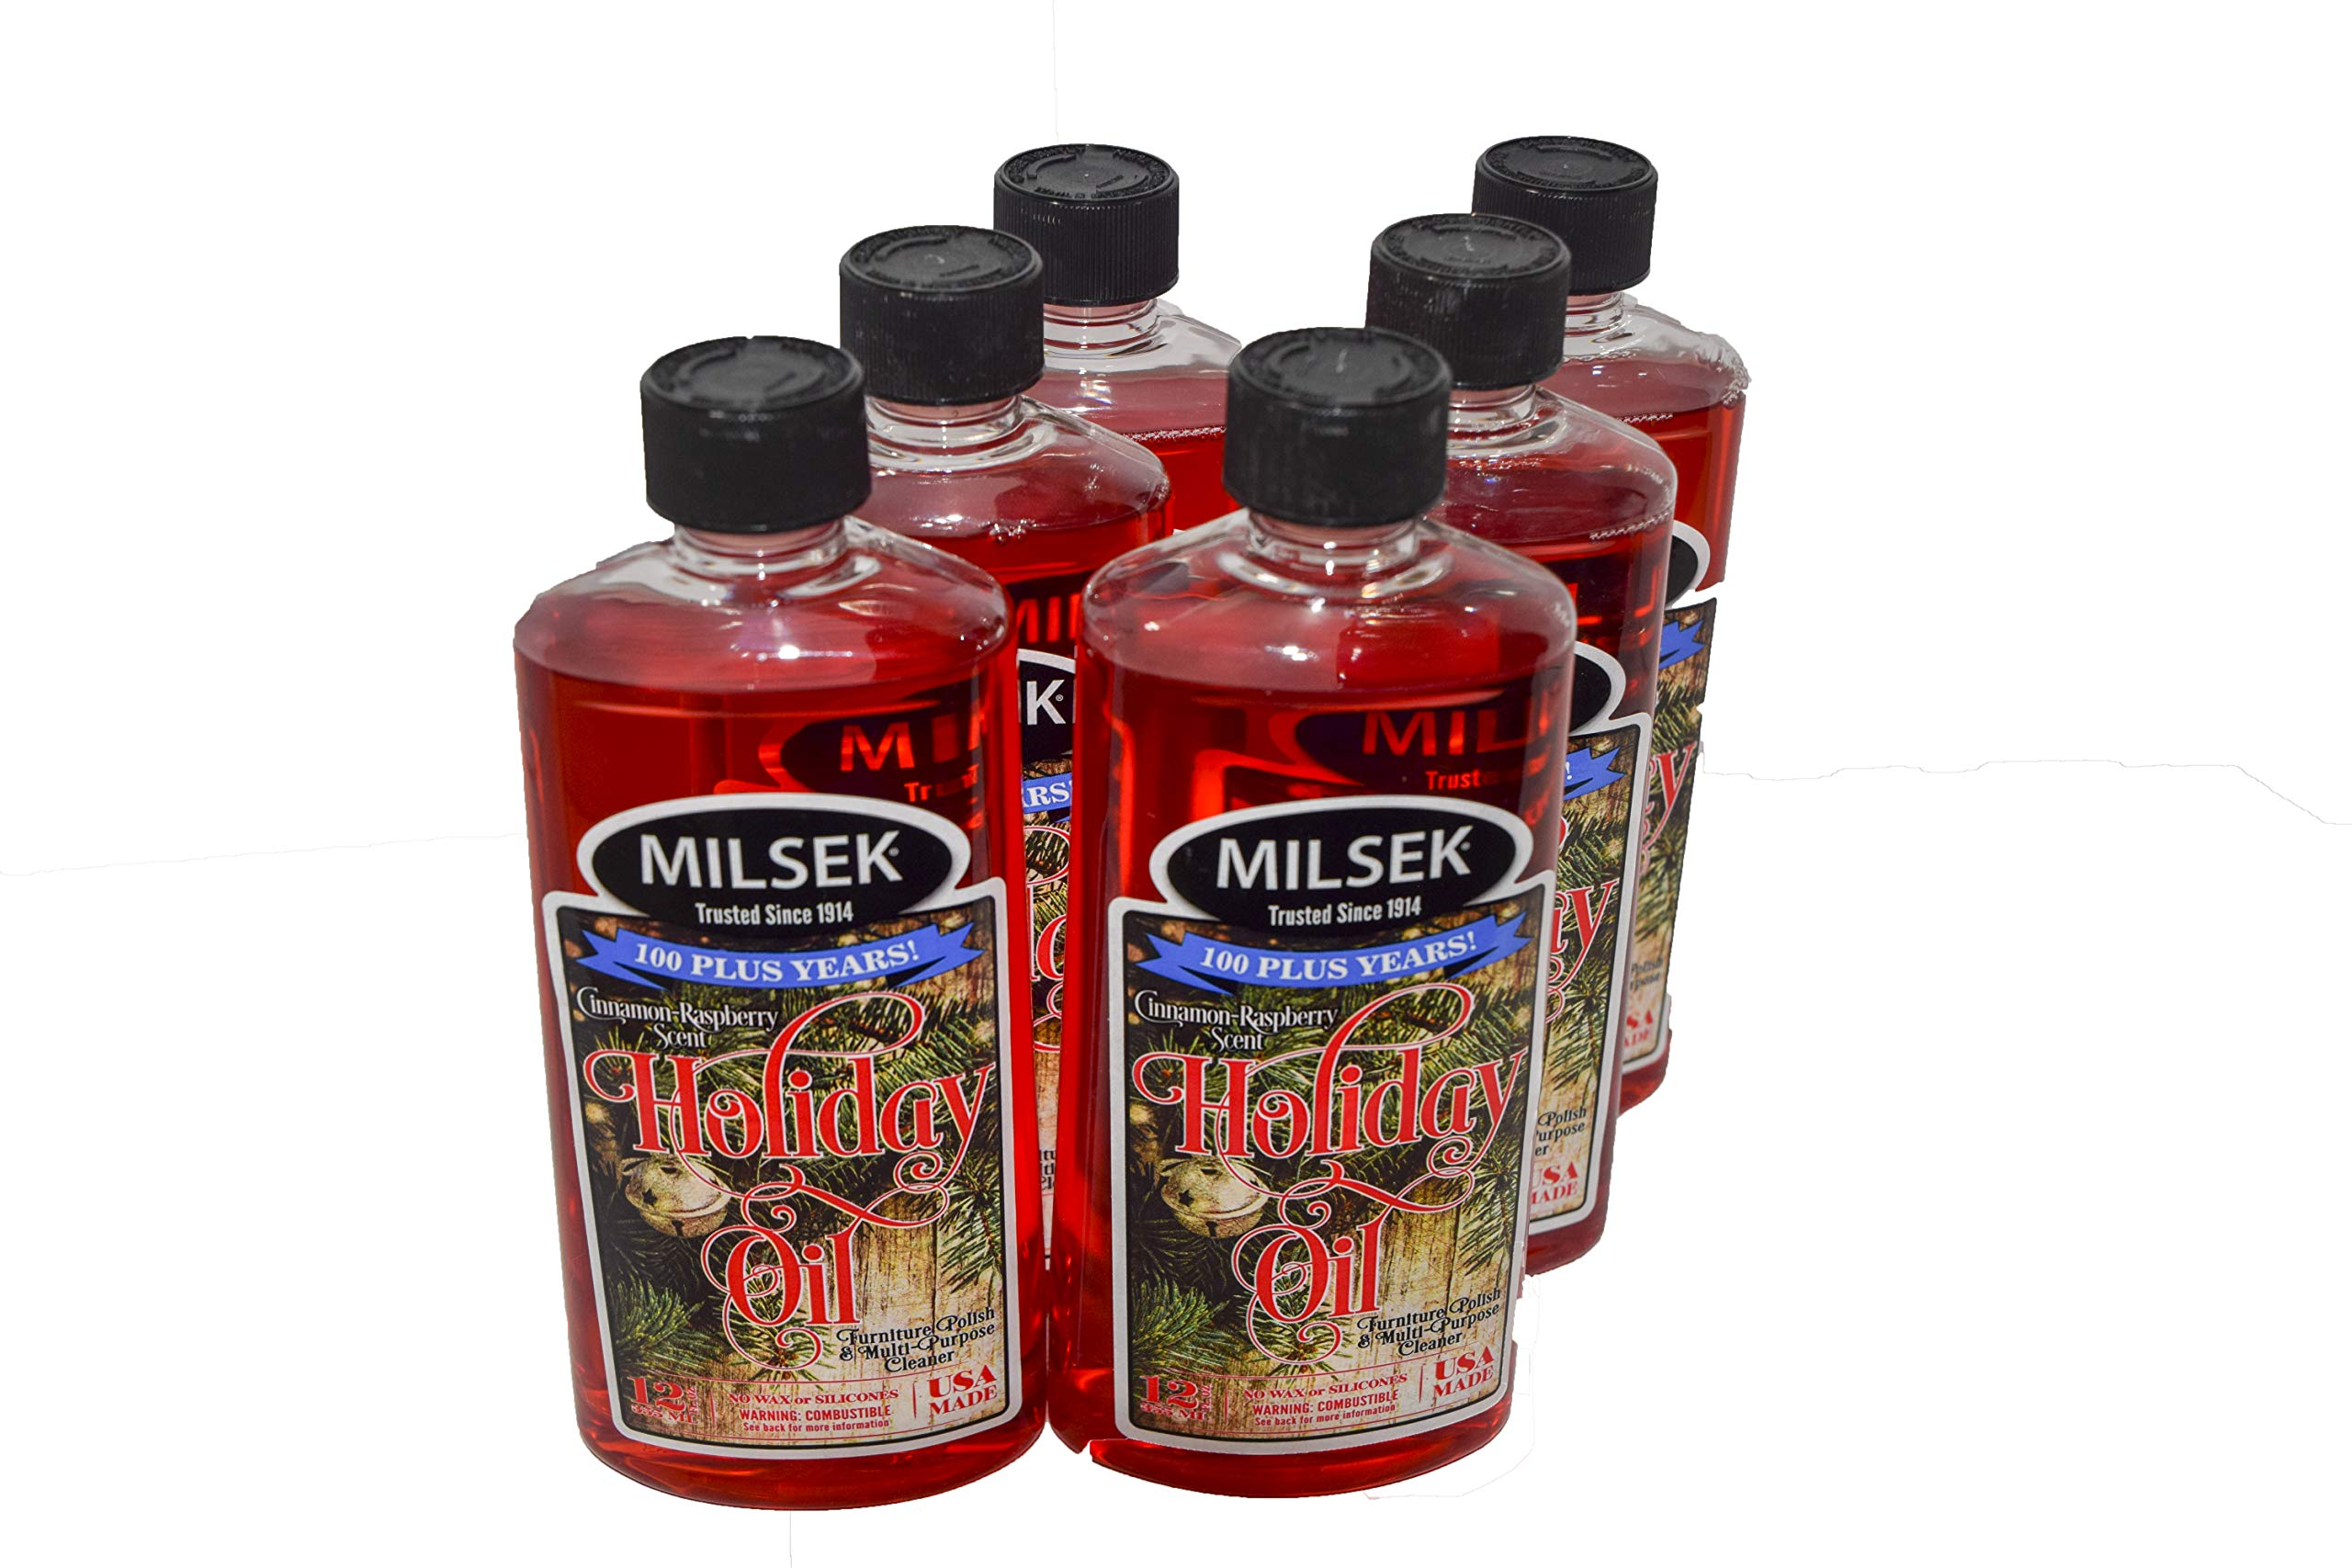 Milsek Furniture Polish and Cleaner with Cinnamon-Raspberry Scent (Holiday Oil), 12-Ounce, Pack of 6, HO-6 by Milsek